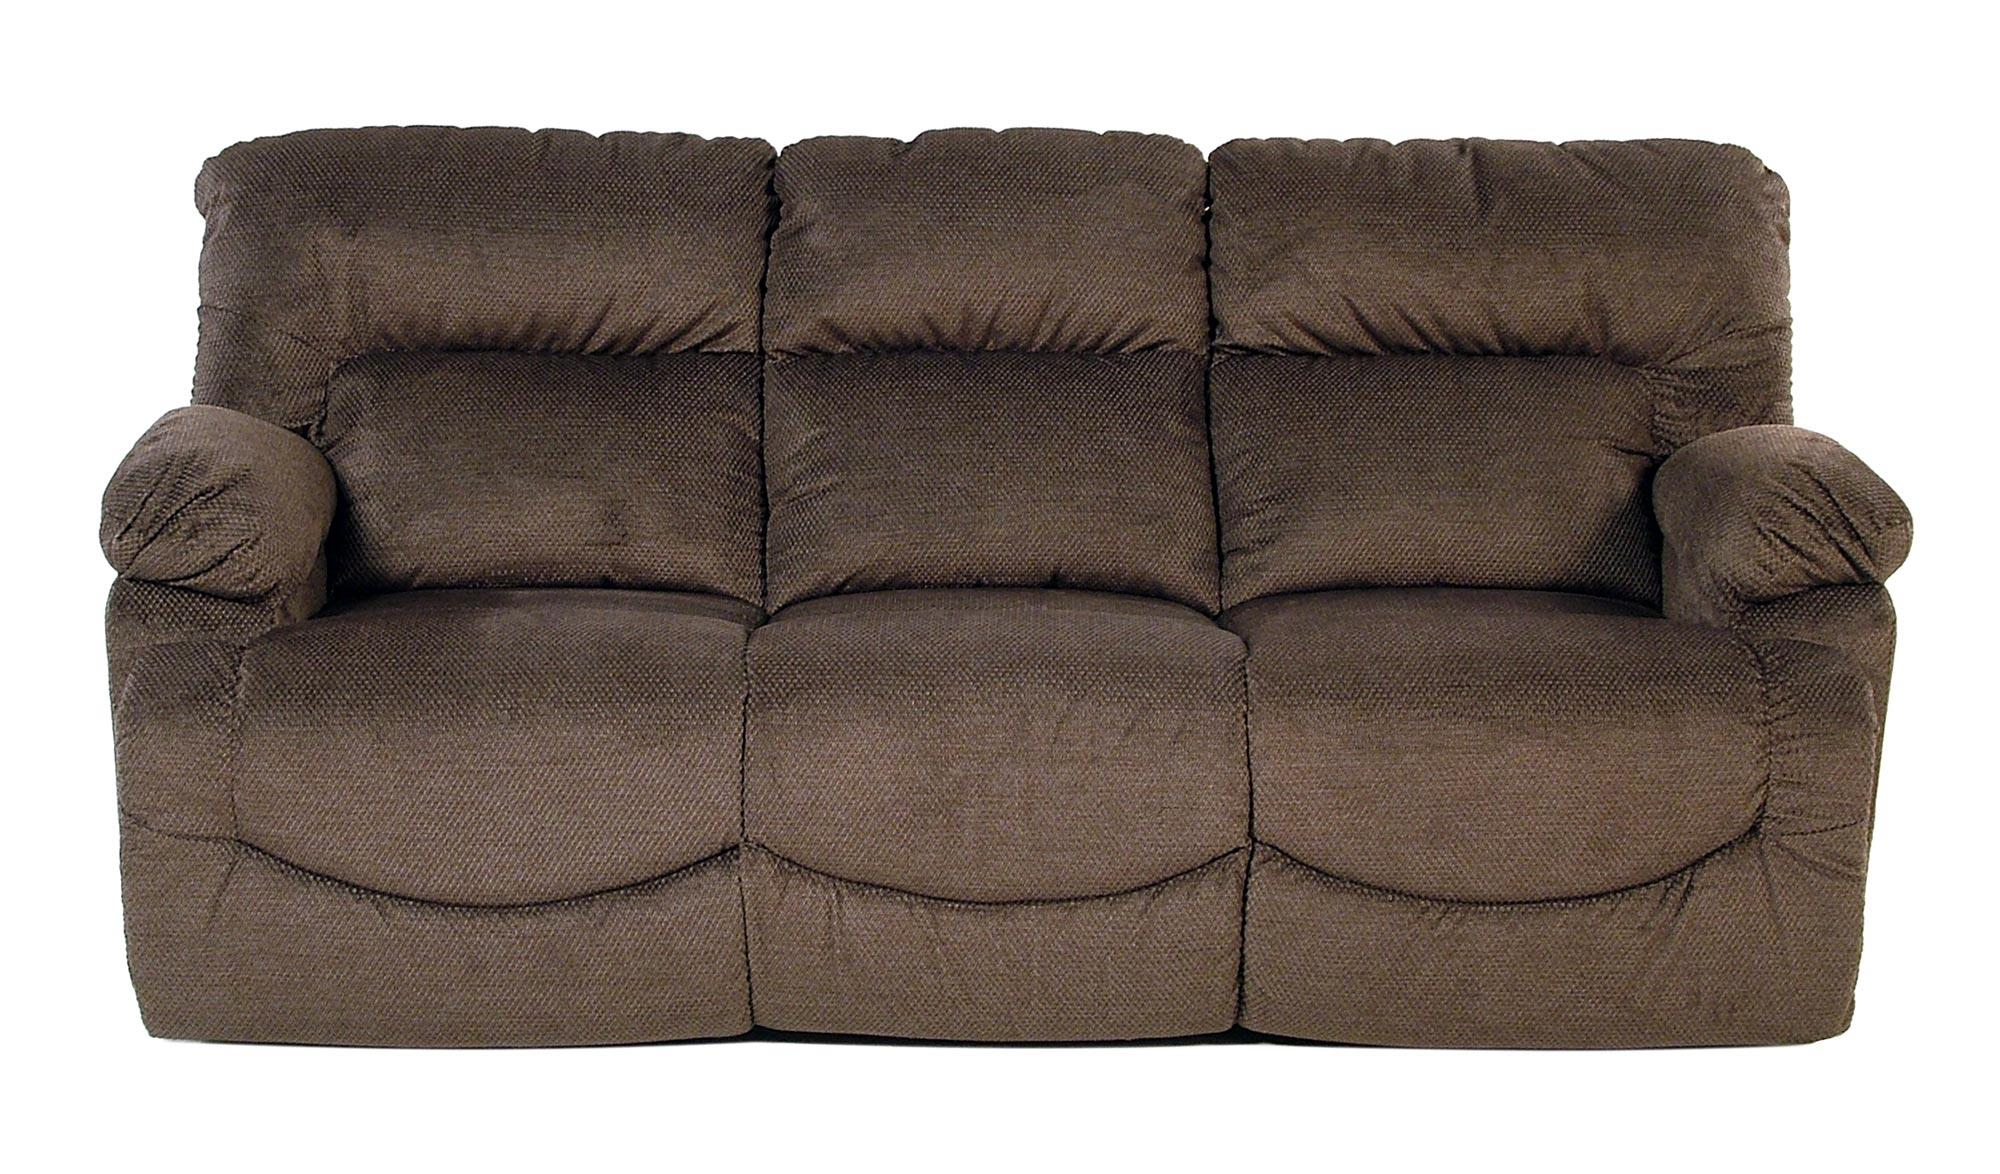 La-Z-Boy Shona La-Z-Time® Full Reclining Sofa - Item Number: 440711-C93235